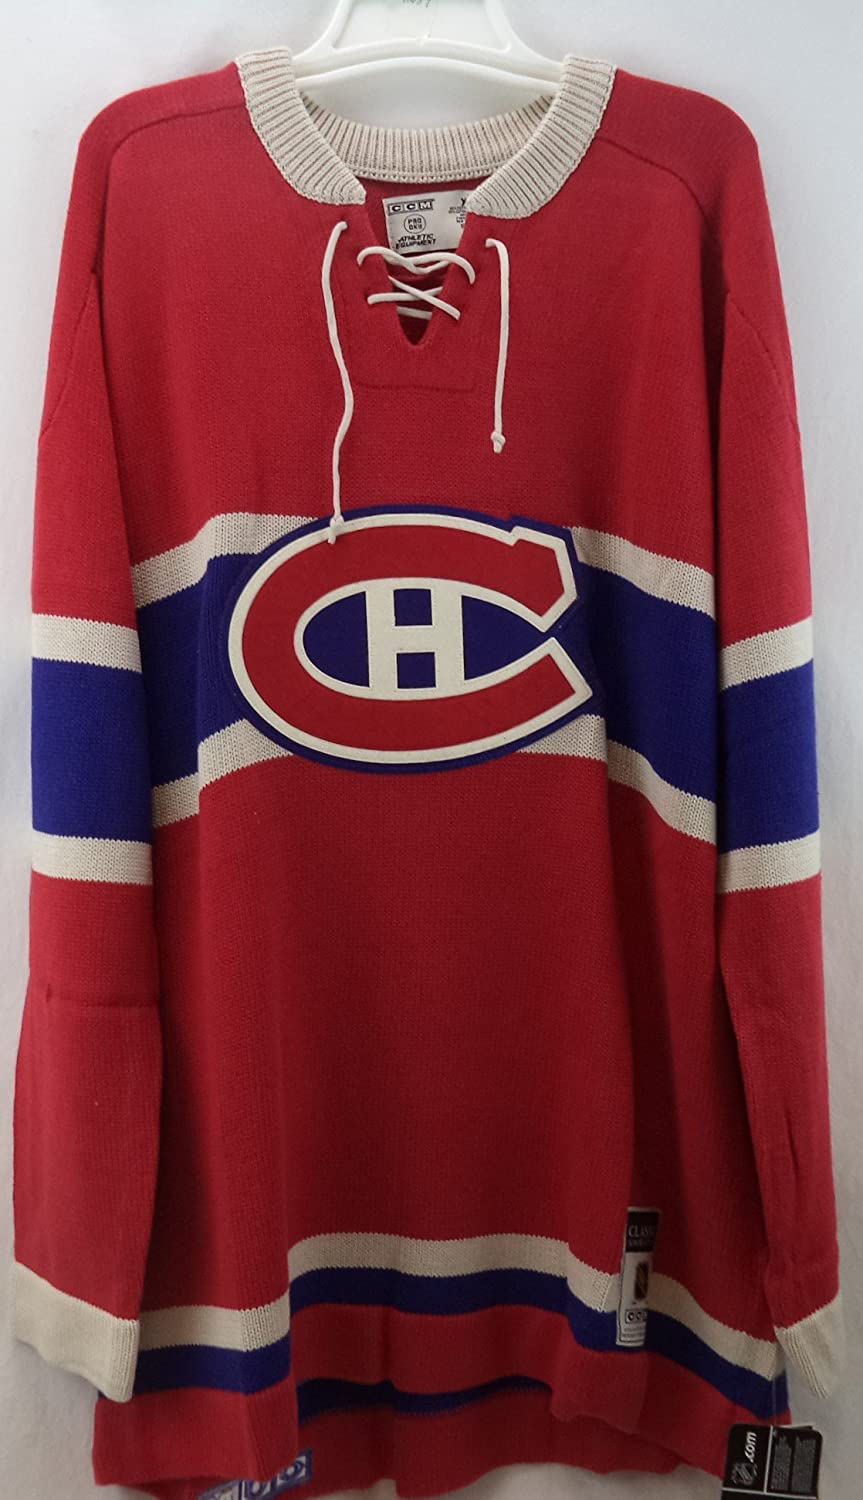 NHL Reebok Montreal Canadiens CCM NHL 1955-56 Classic Heritage Knit Sweater  (X-Large)  Amazon.ca  Sports   Outdoors 043993f3e